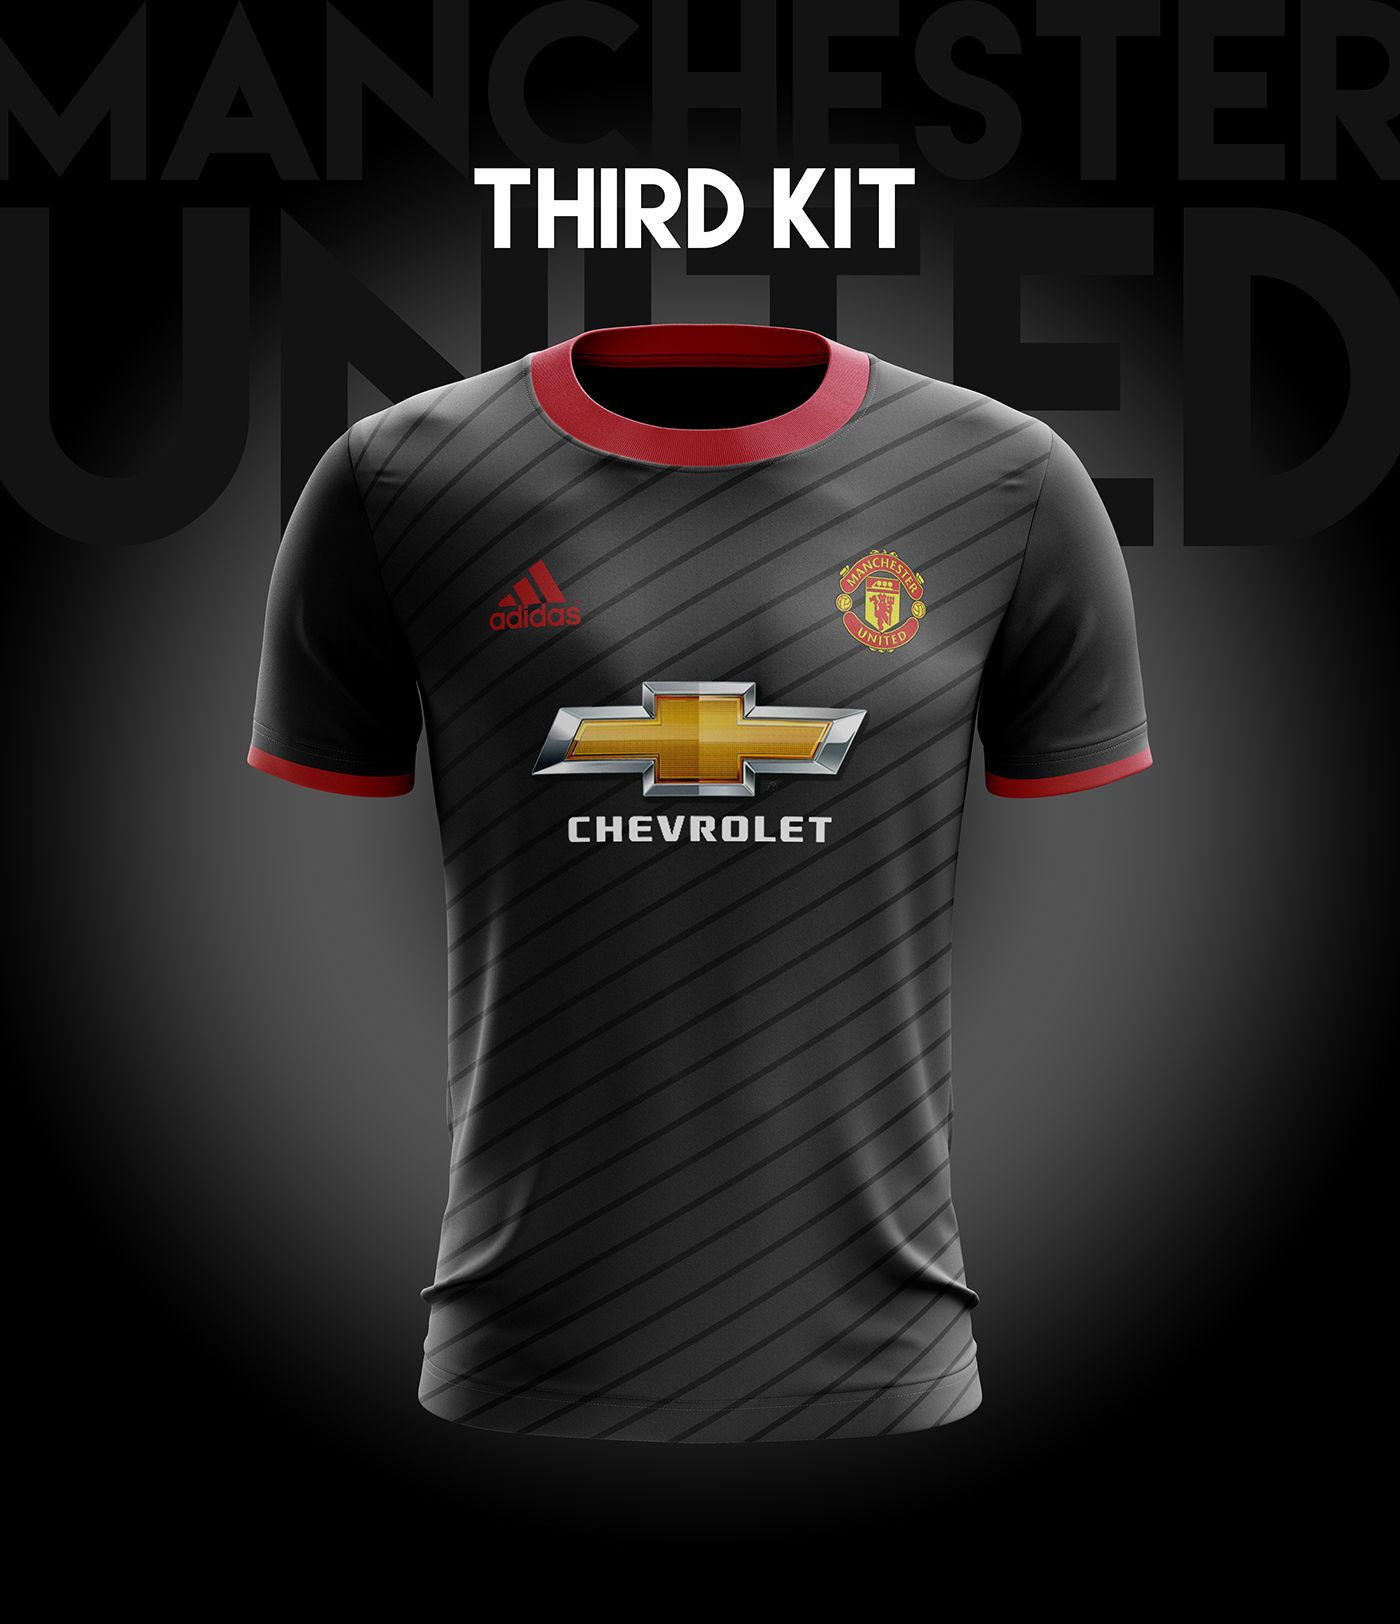 d2e38045fd8 I designed football kits for Manchester United for the upcoming season 18 19.  And this is the result of how it would look like if i could design a kit  for ...